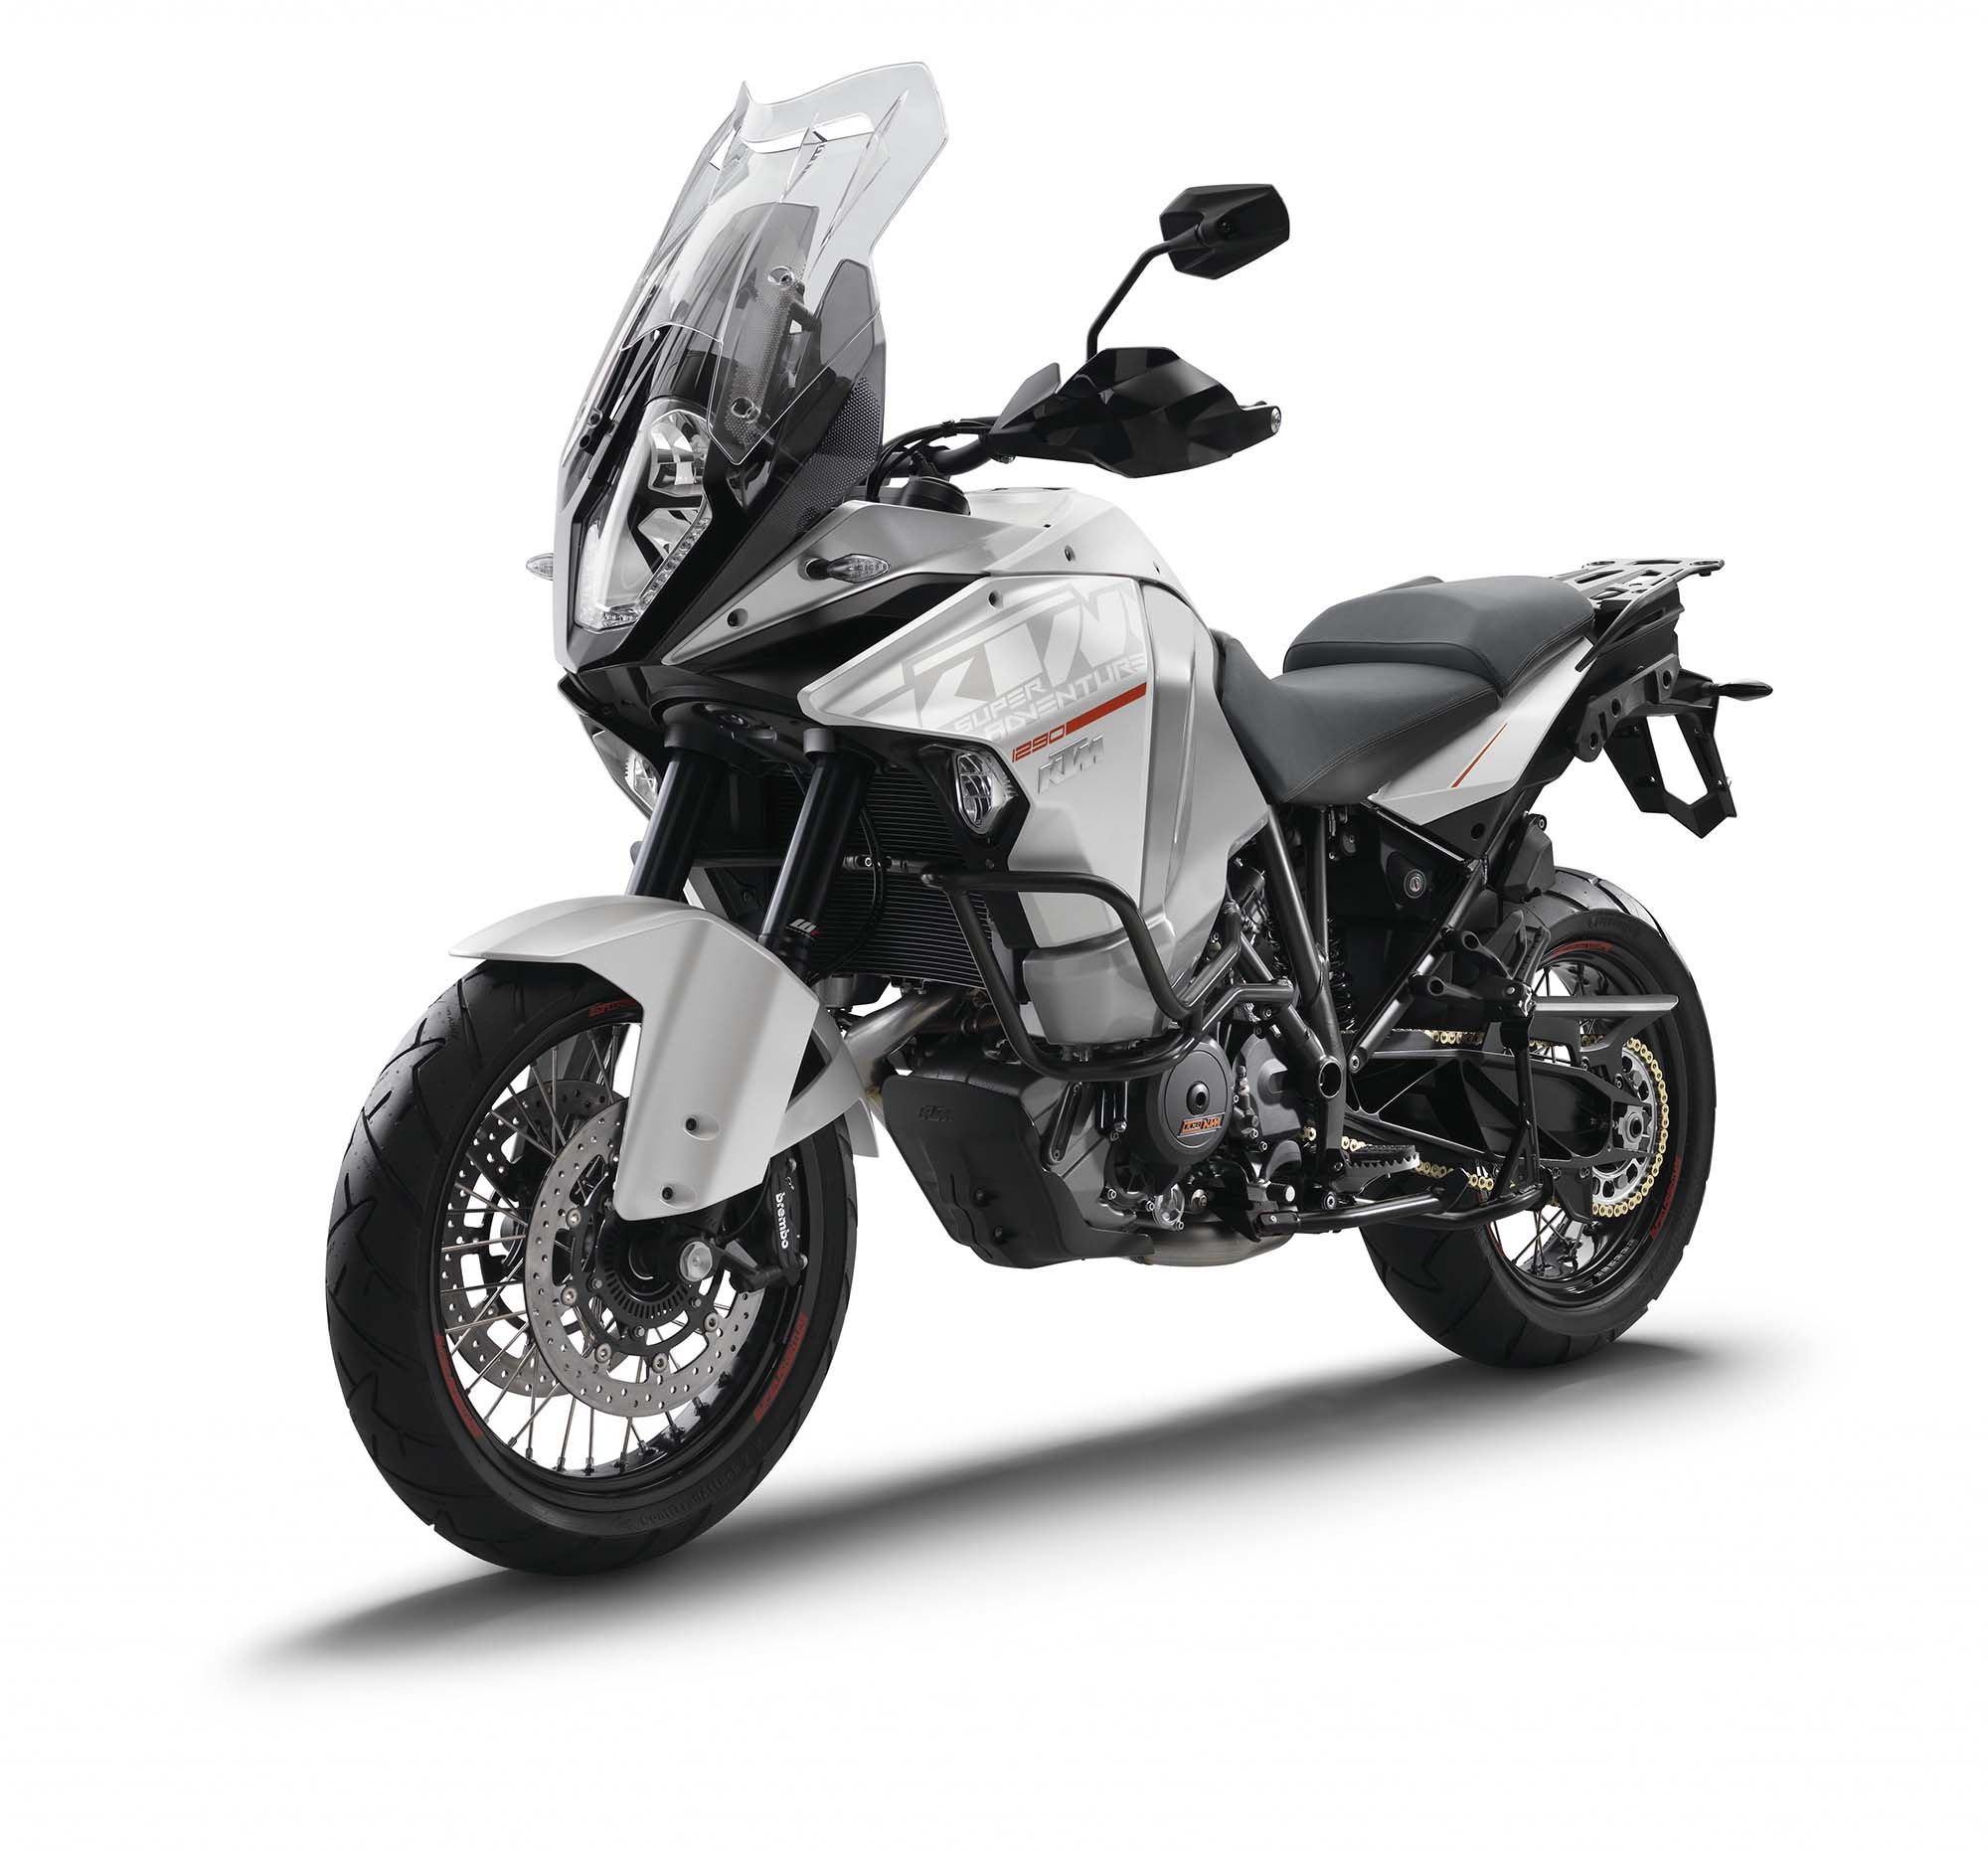 2015 ktm 1290 super adventure - even with 180hp, is this the